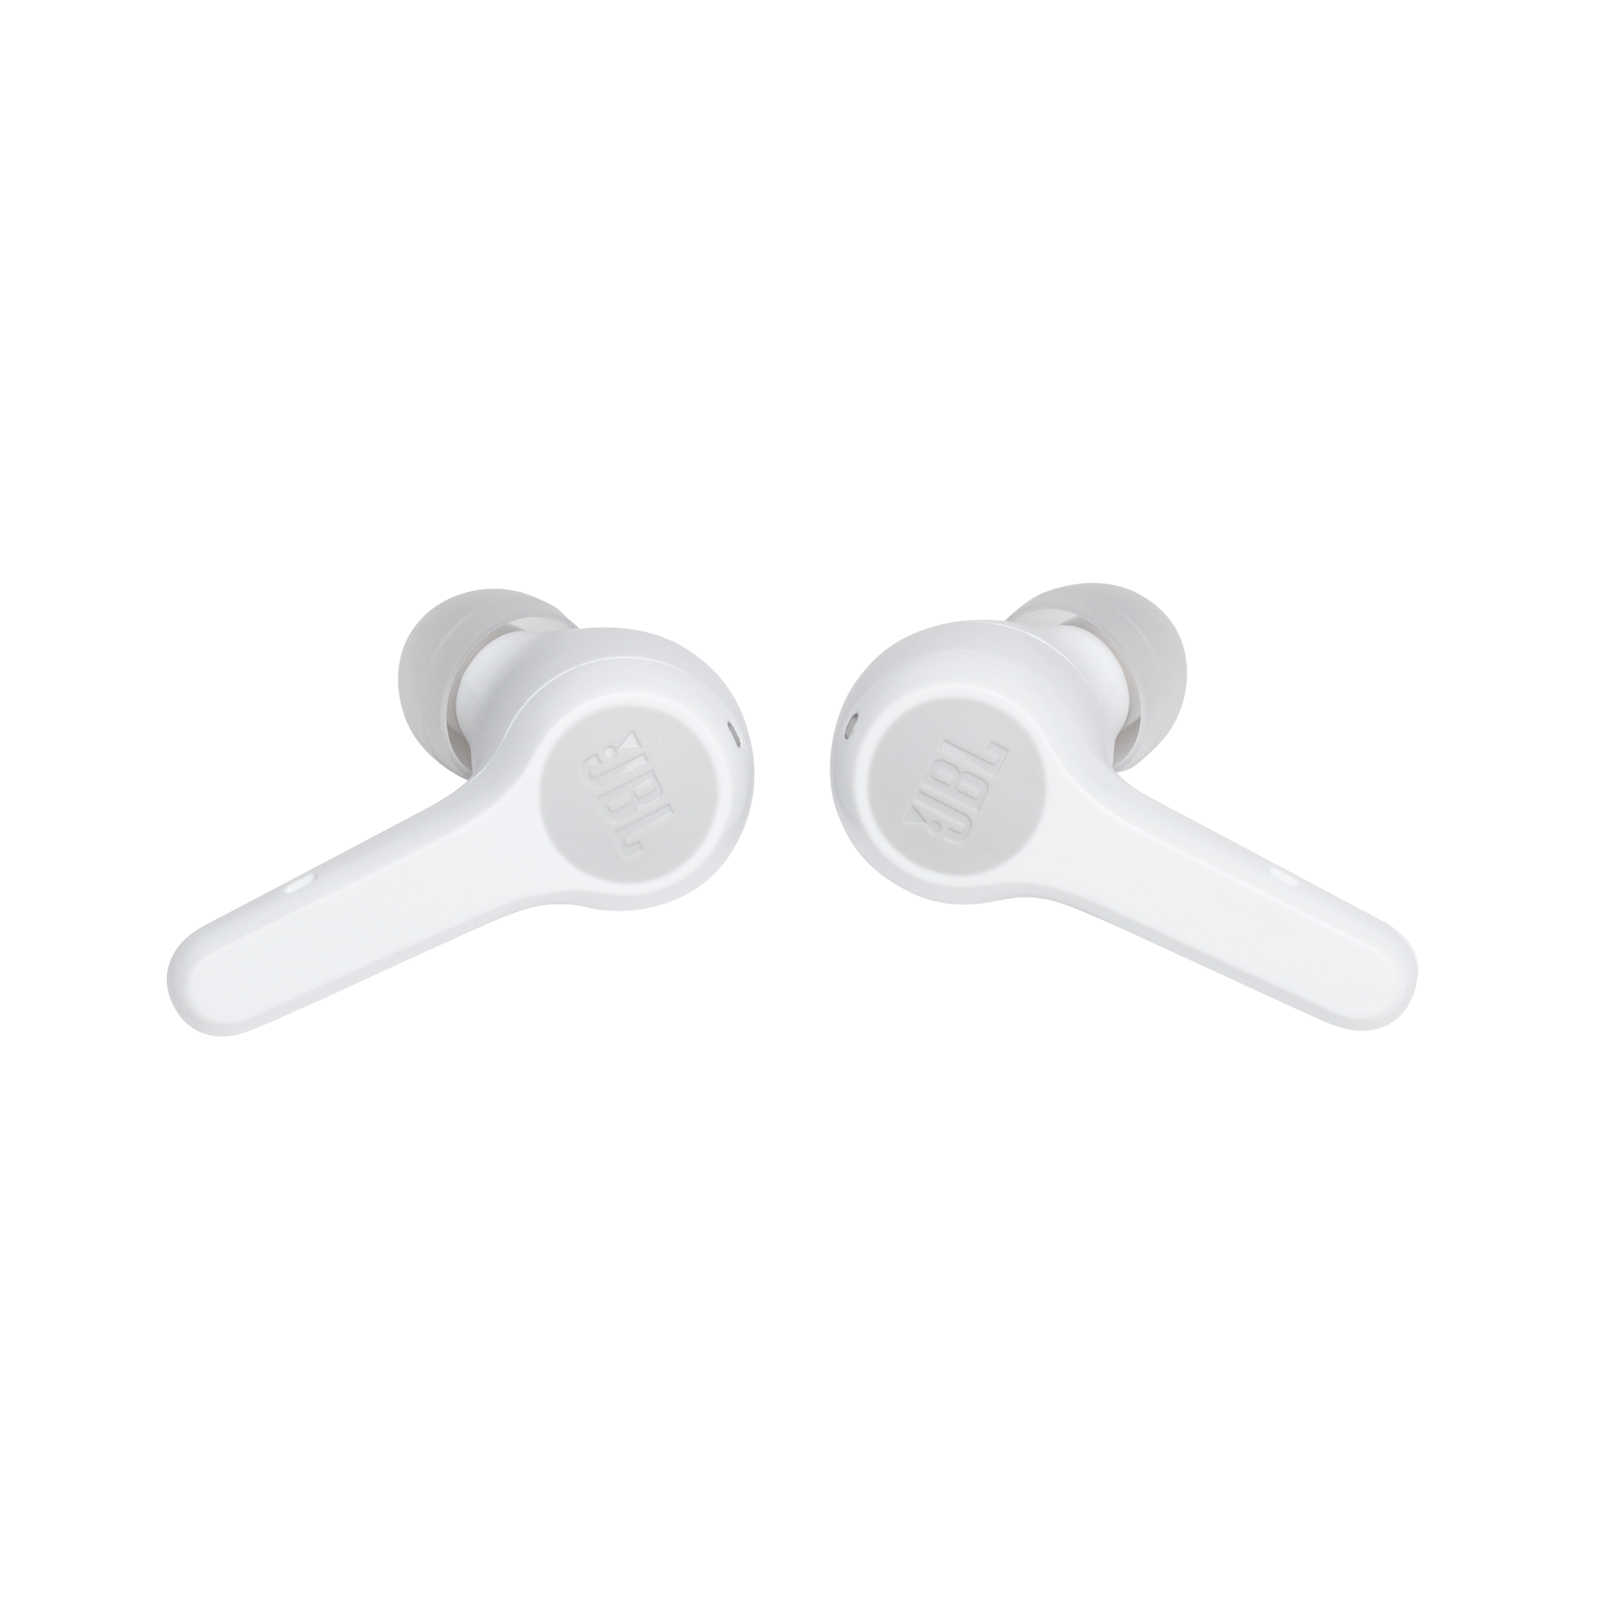 JBL Tune 215TWS - White - True wireless earbud headphones - Detailshot 3